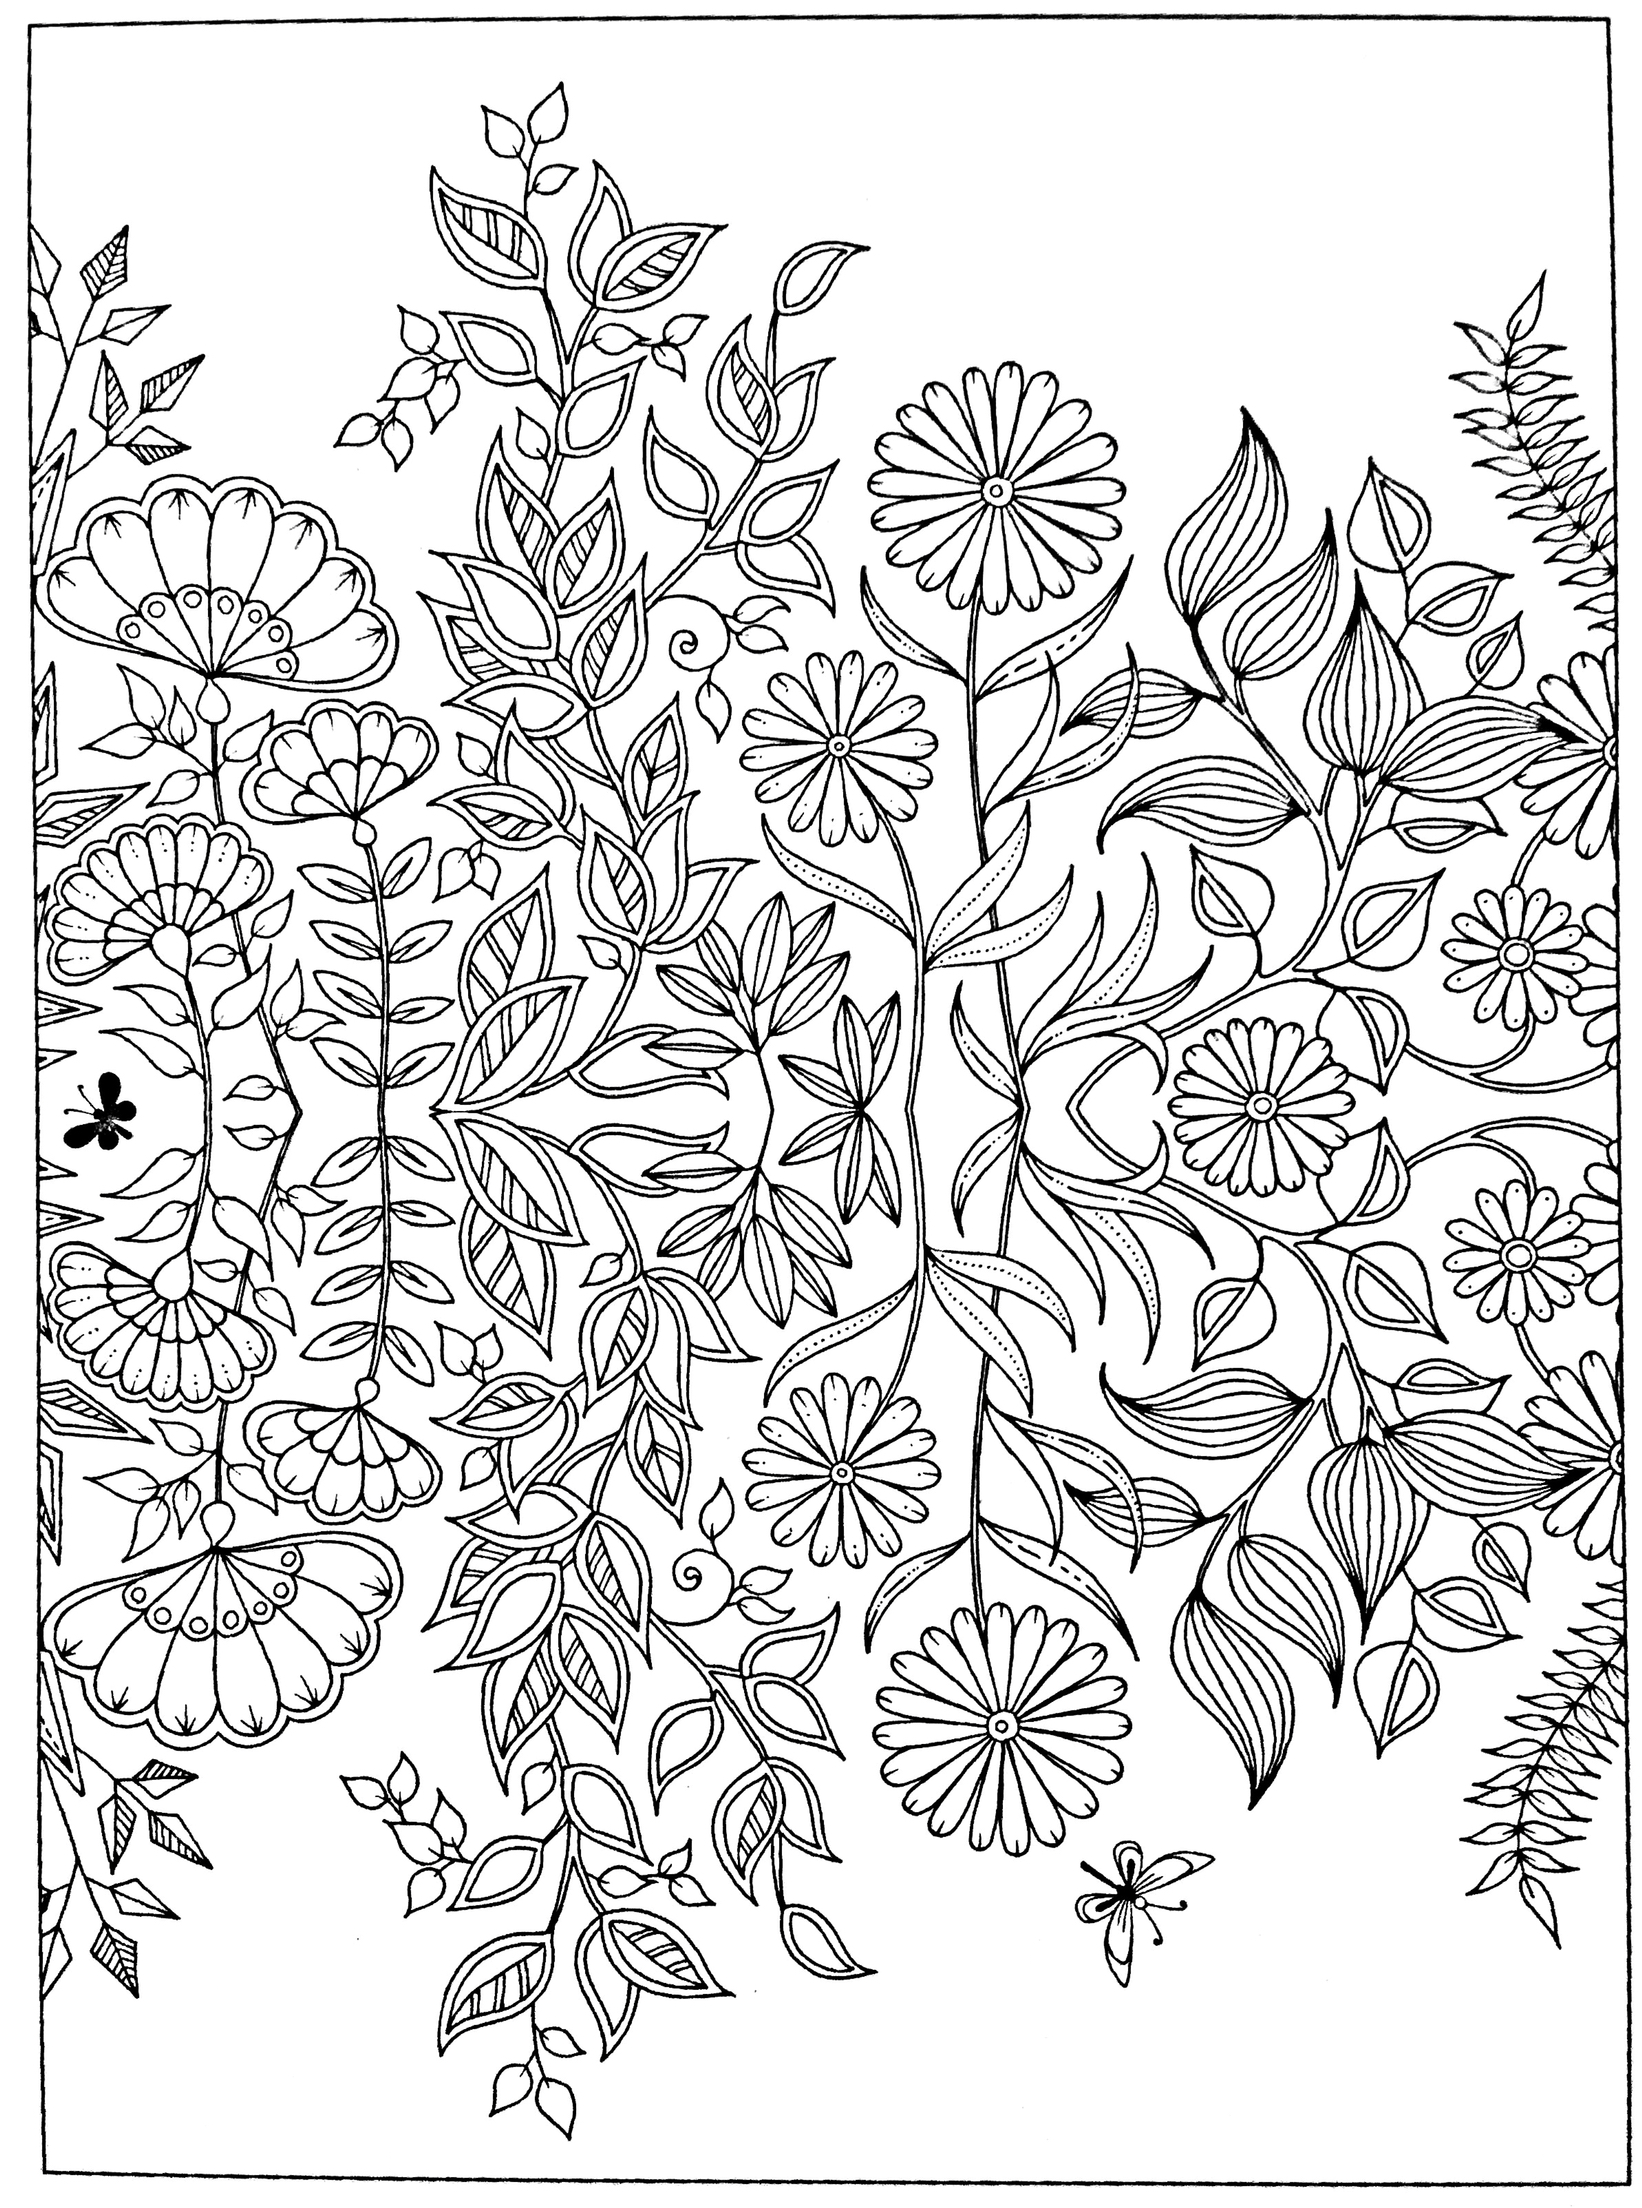 garden colouring pages kids gardening coloring pages free colouring pictures to print garden colouring pages